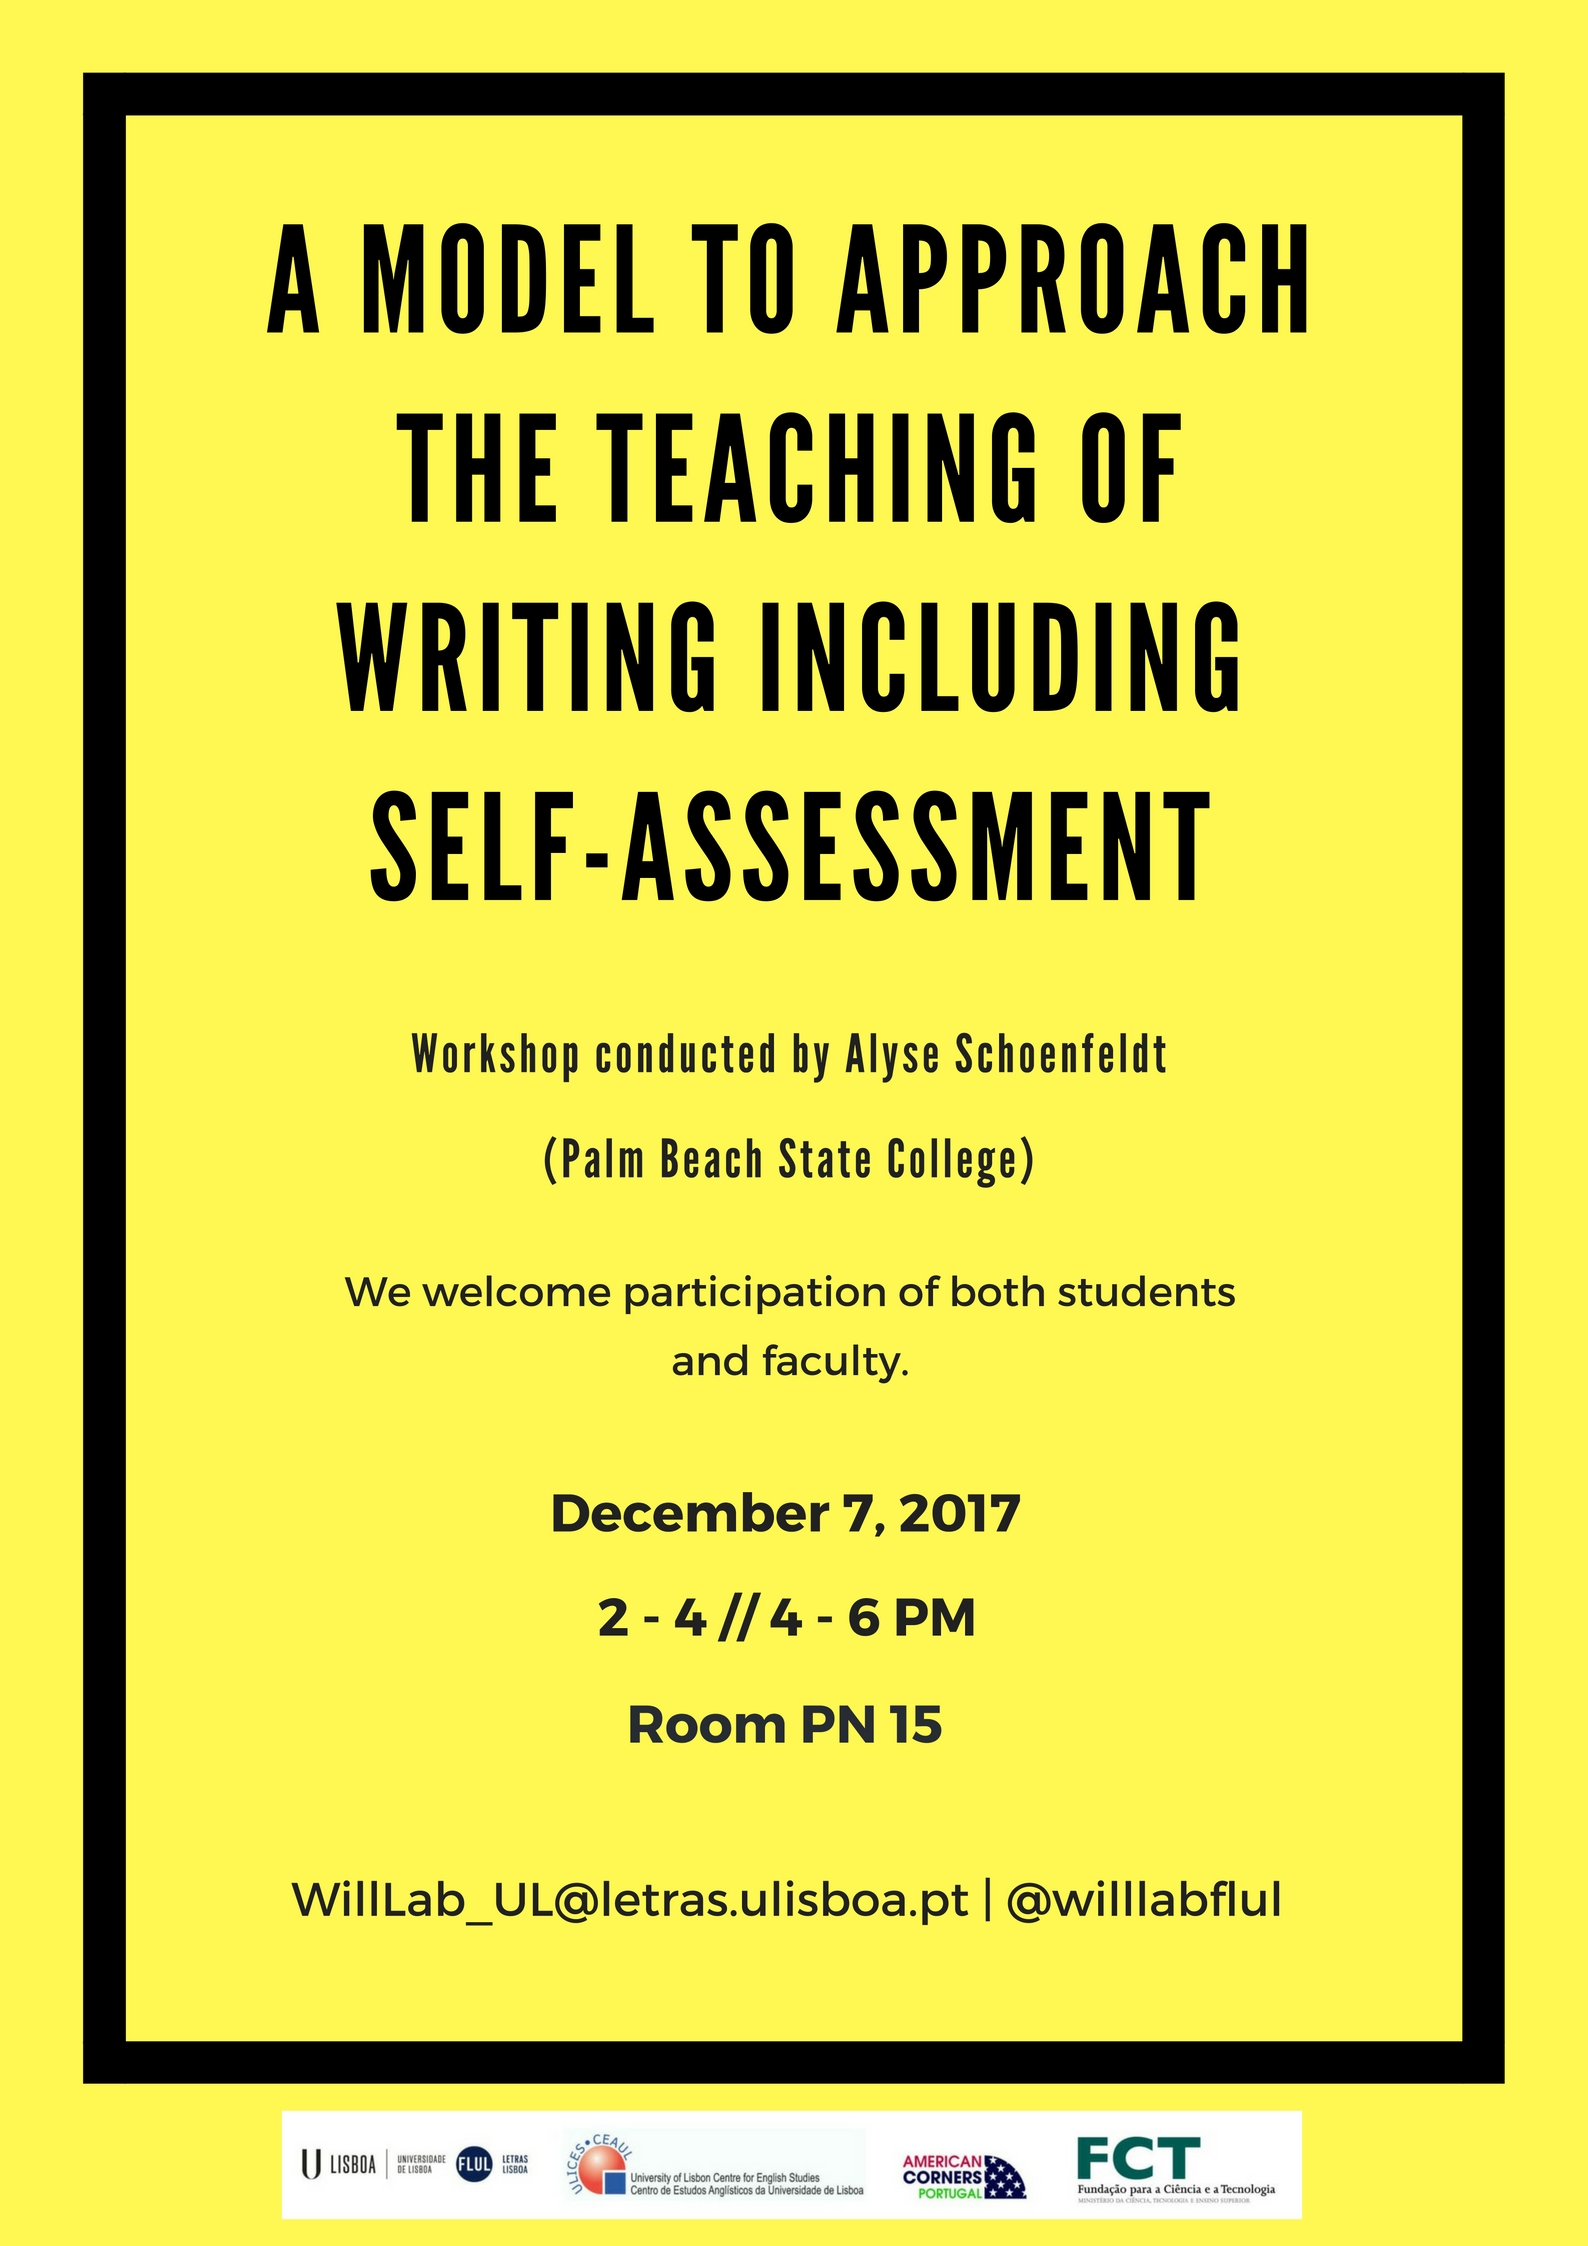 workshop a model to approach the teaching of writing